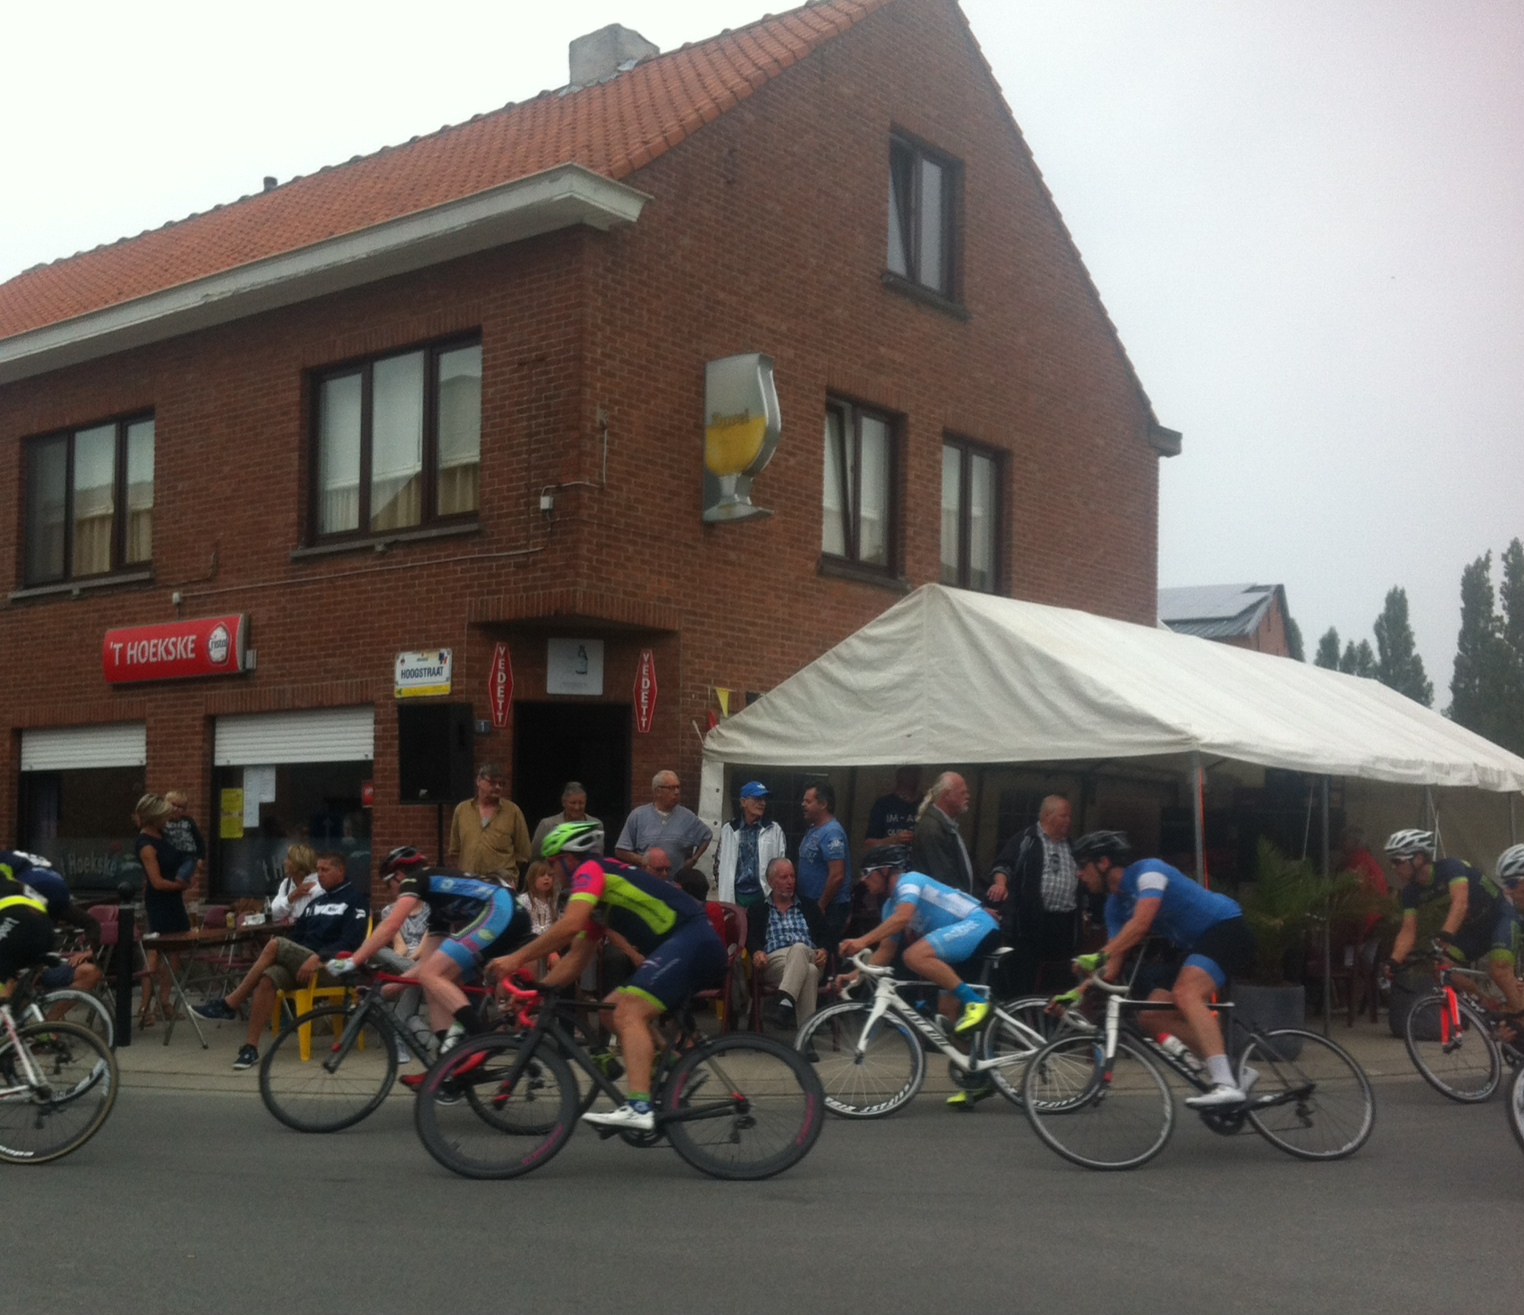 Conor passing the 'T Hoekske Pub before the Bazel finishing straight. Serves a great Westmalle Triple ...